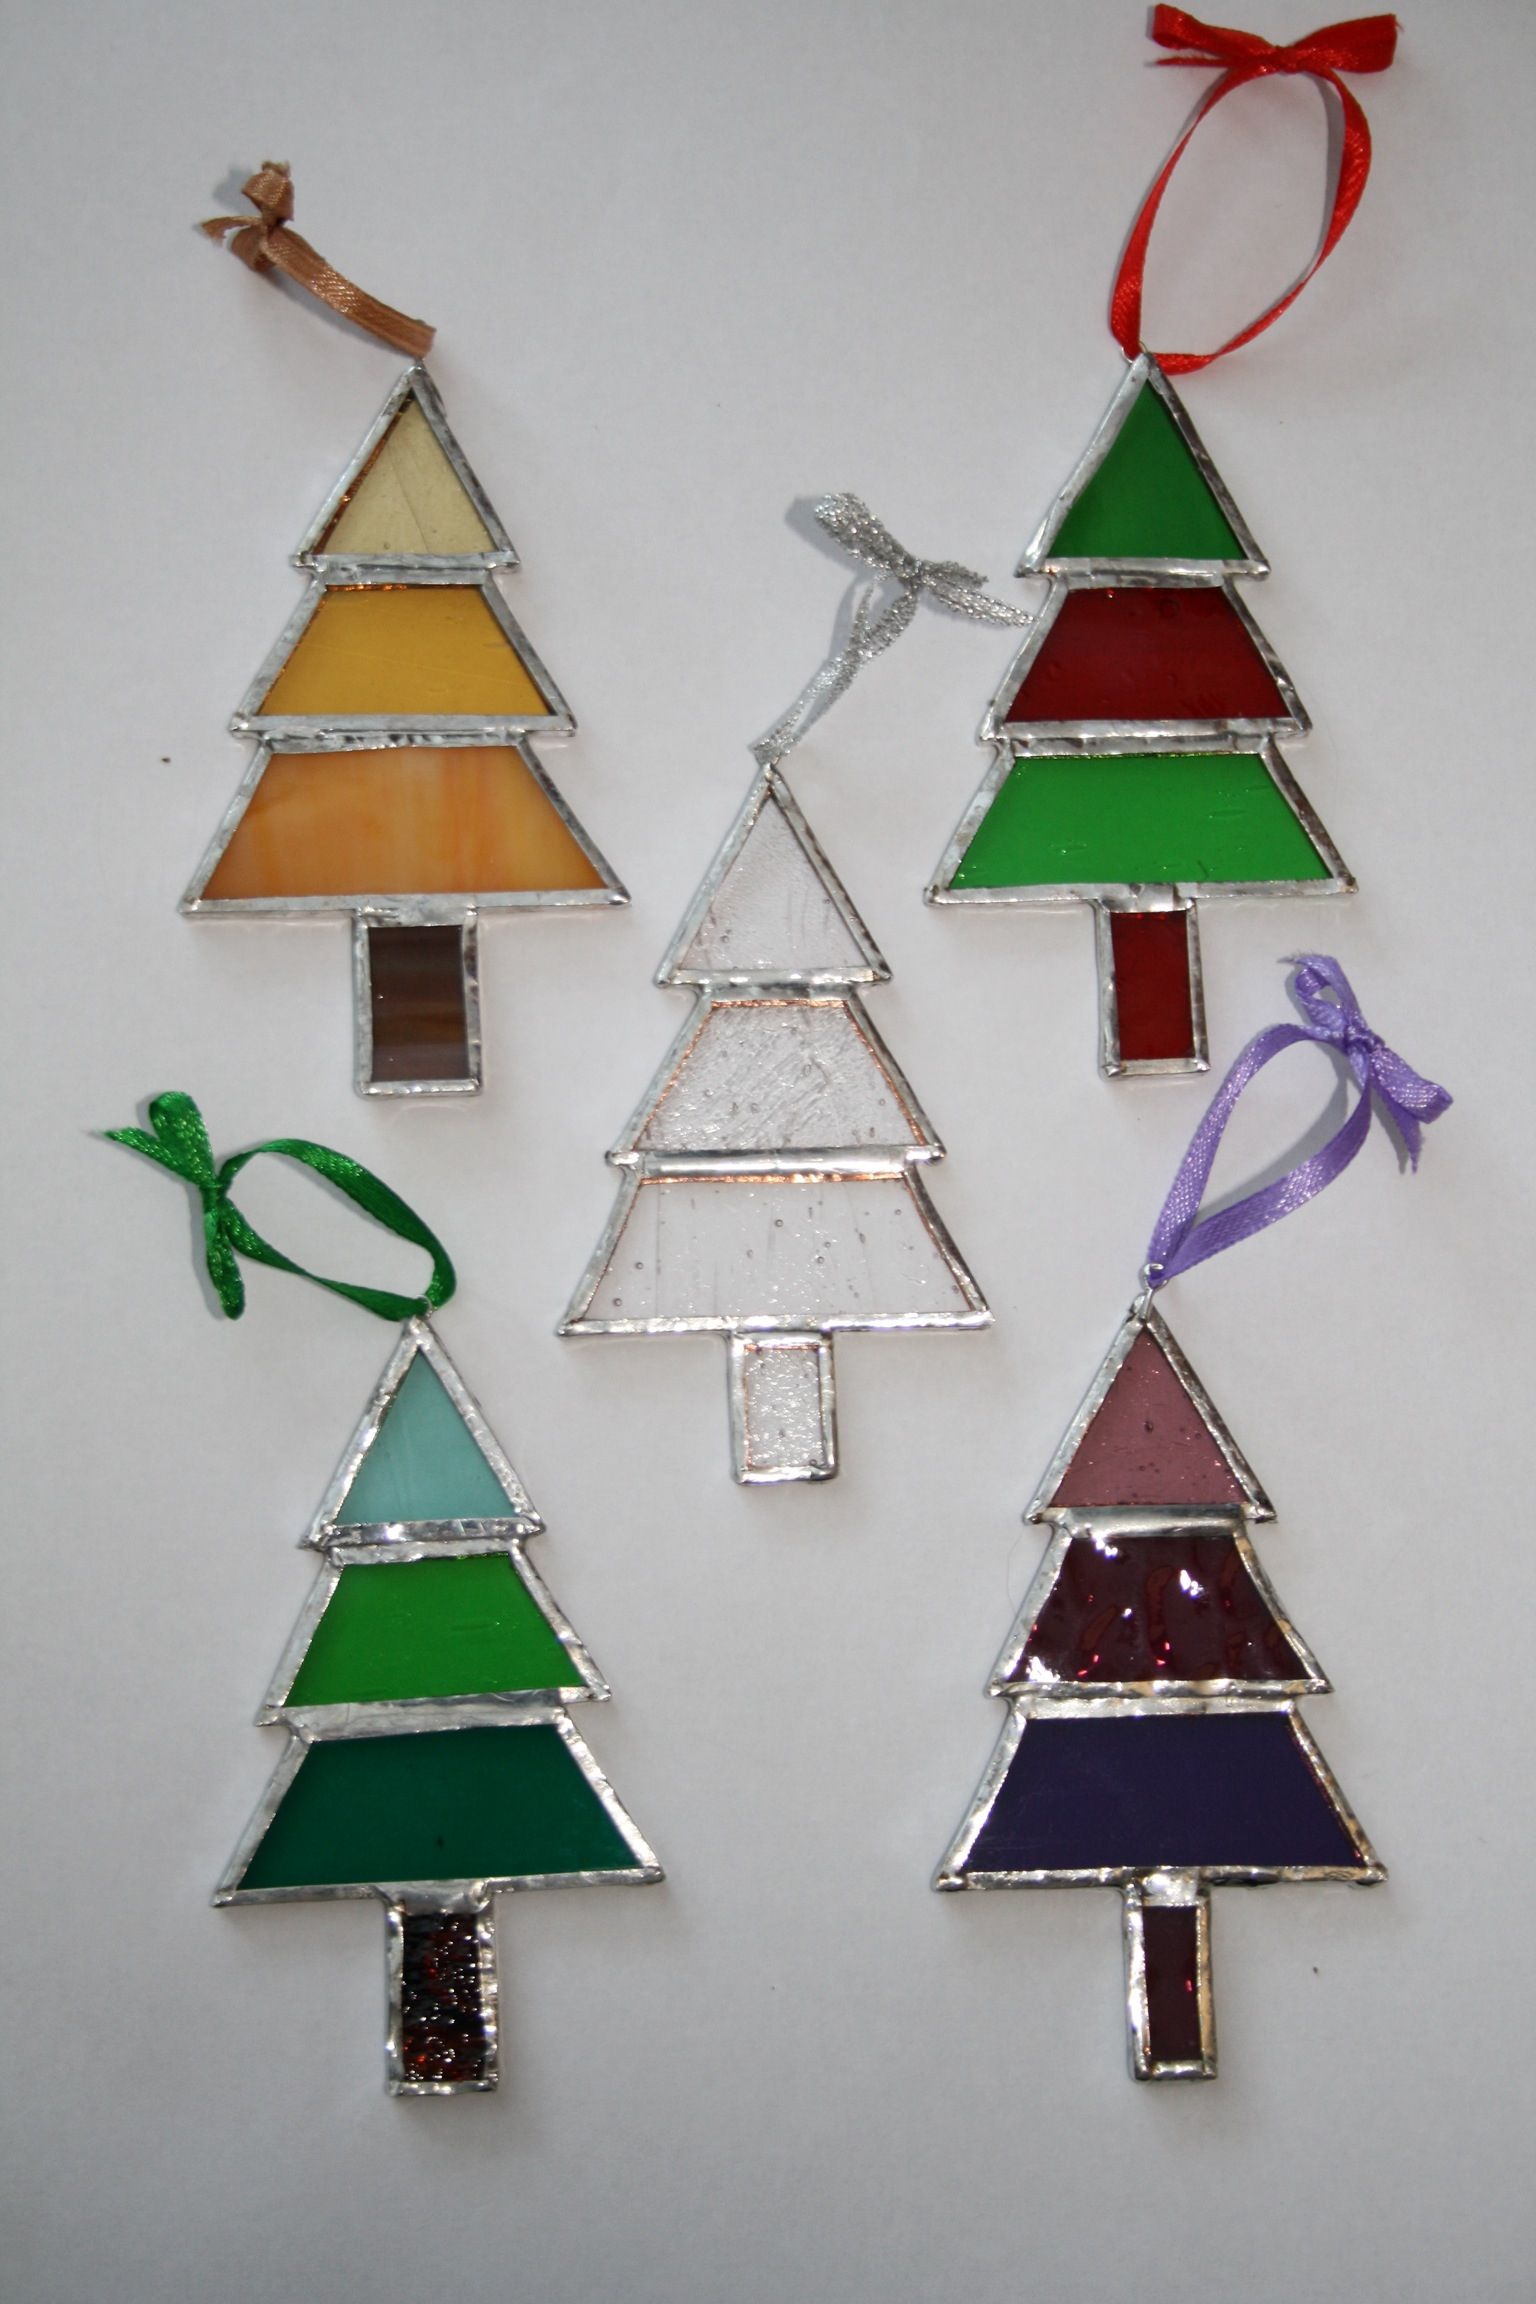 Stained Glass Cheistmas Trees Stained Glass Christmas Stained Glass Ornaments Stained Glass Gifts